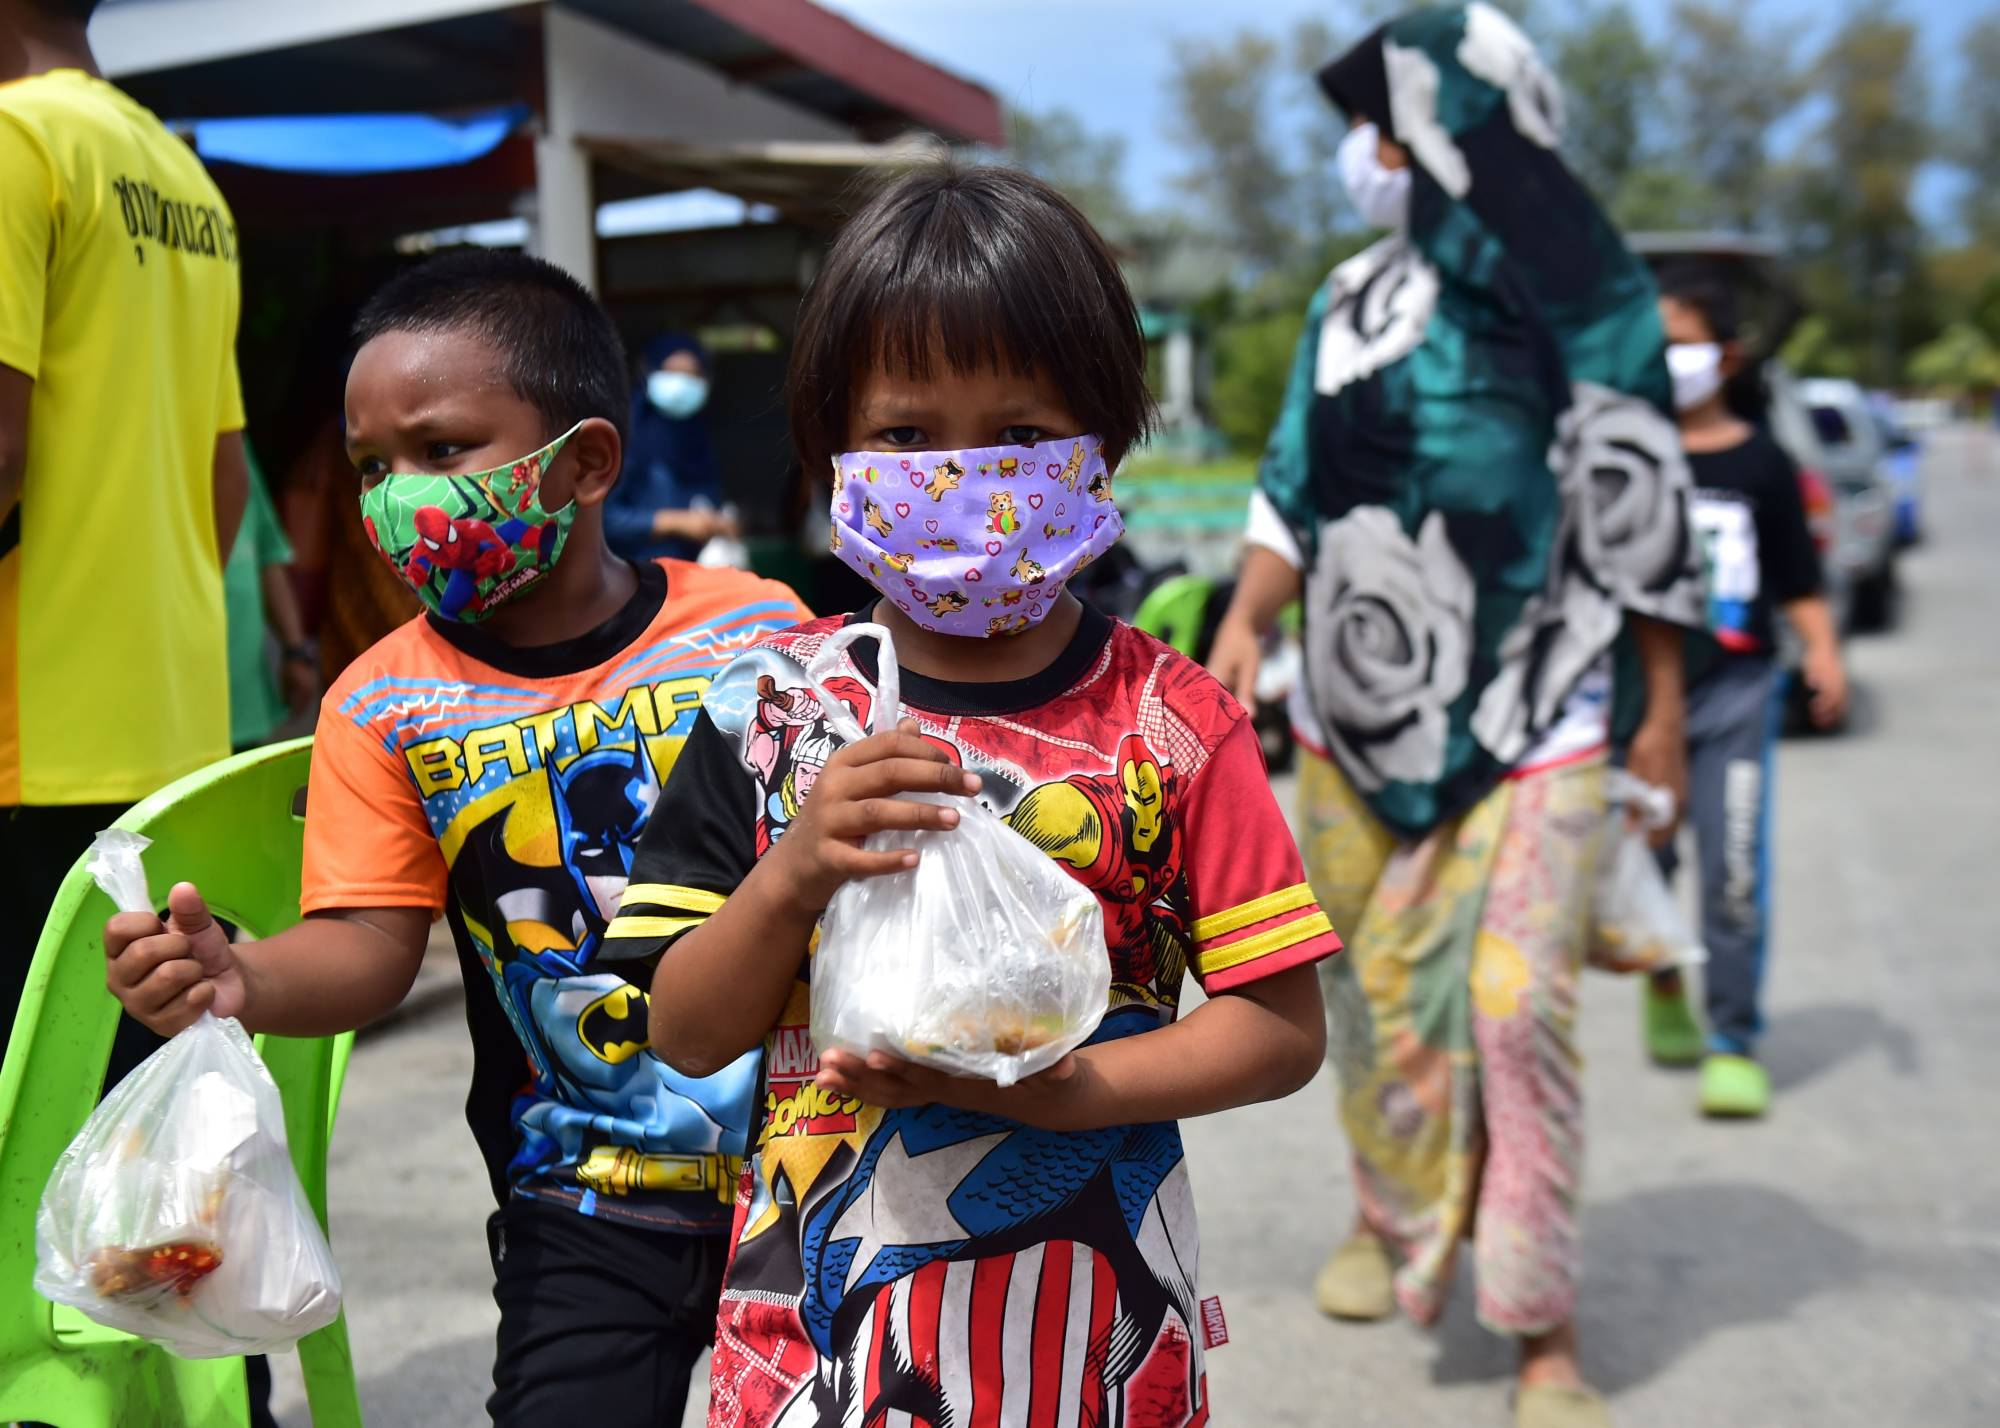 Children carry food donations in Thailand's southern province of Narathiwat on April 23. The Distance Learning Television program that was developed for learners in remote rural areas is now being extended nationwide with new courses being recorded to broaden the curriculum. | AFP-JIJI